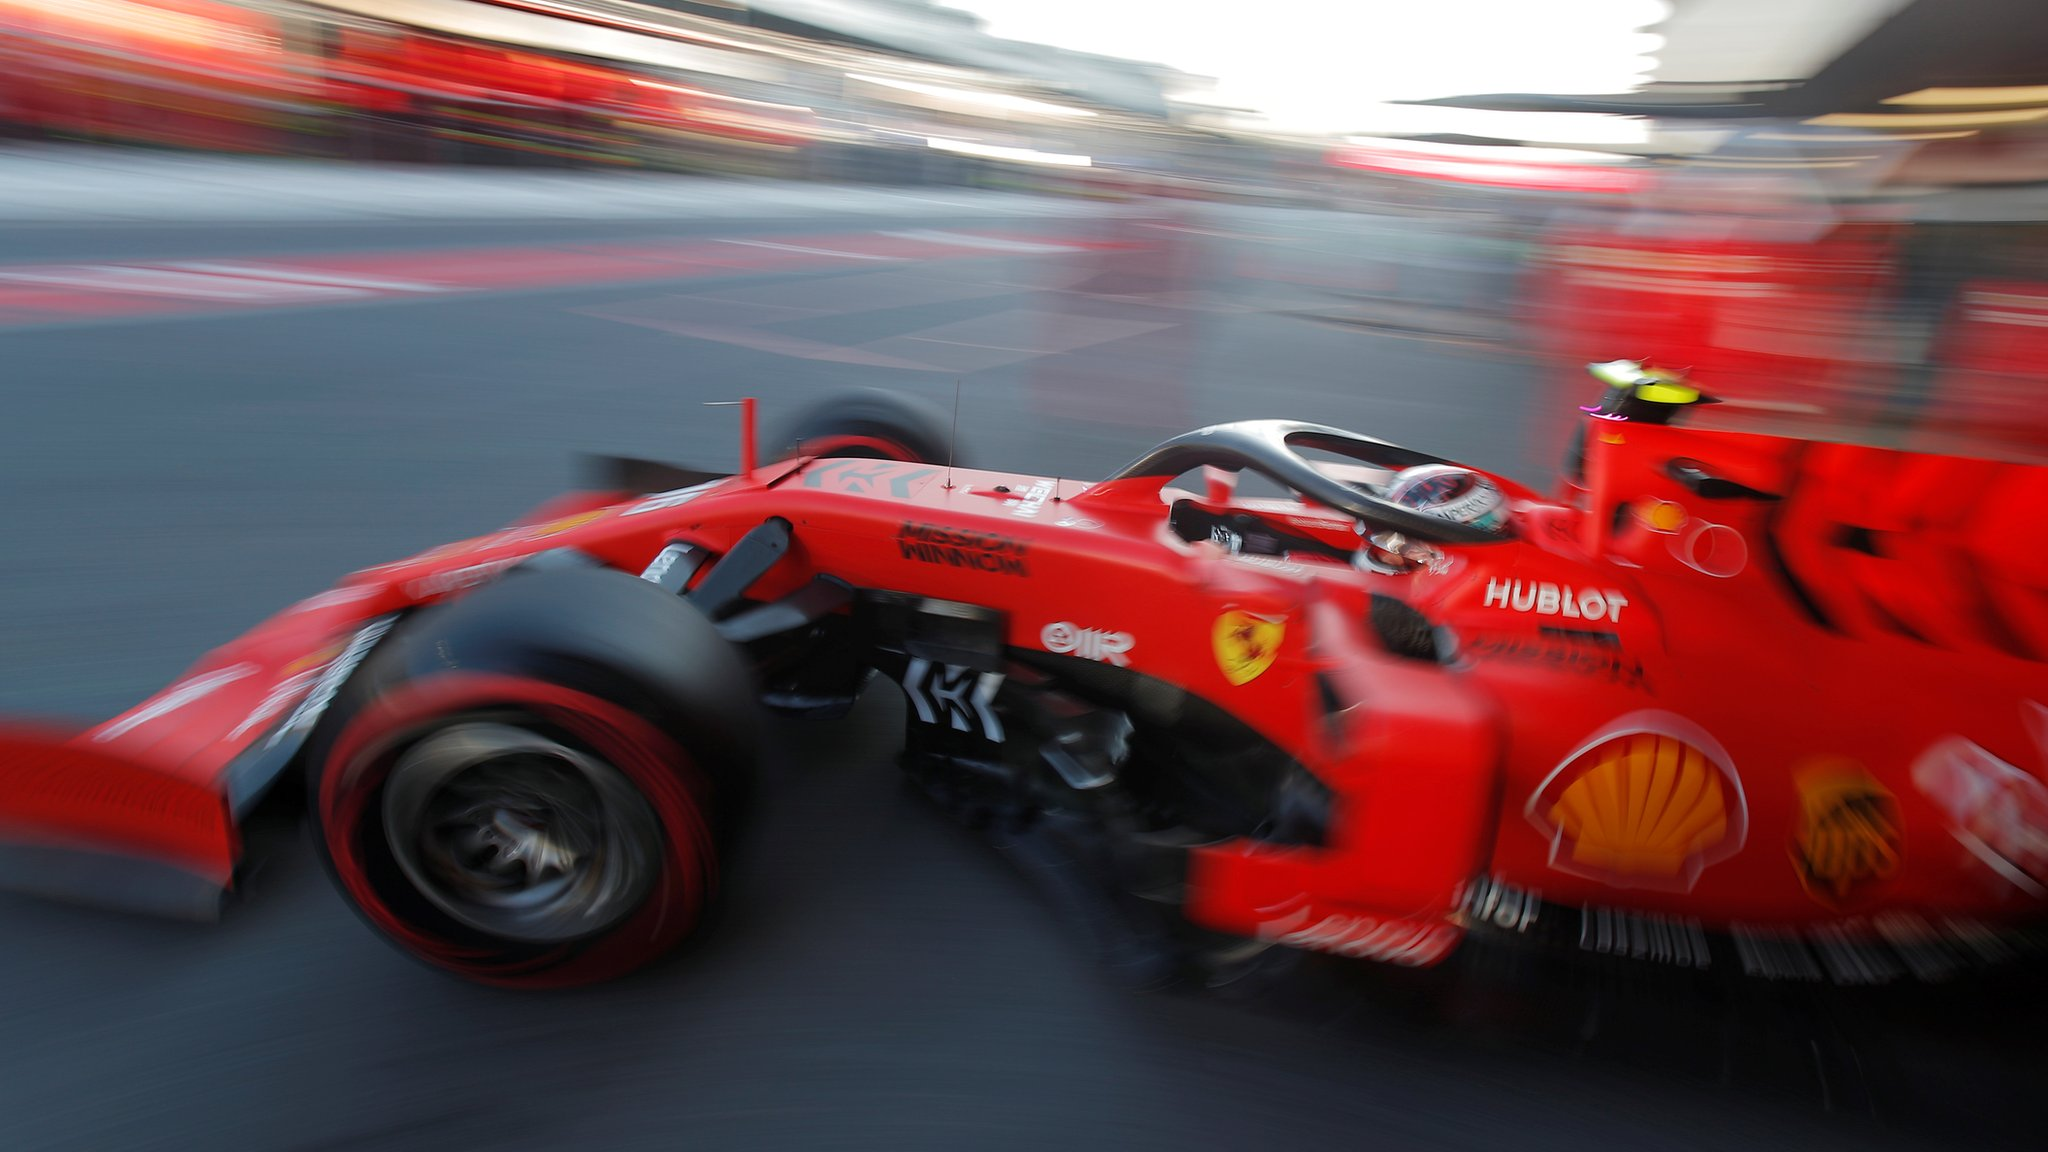 Leclerc fastest in Azerbaijan GP practice after incident-filled day